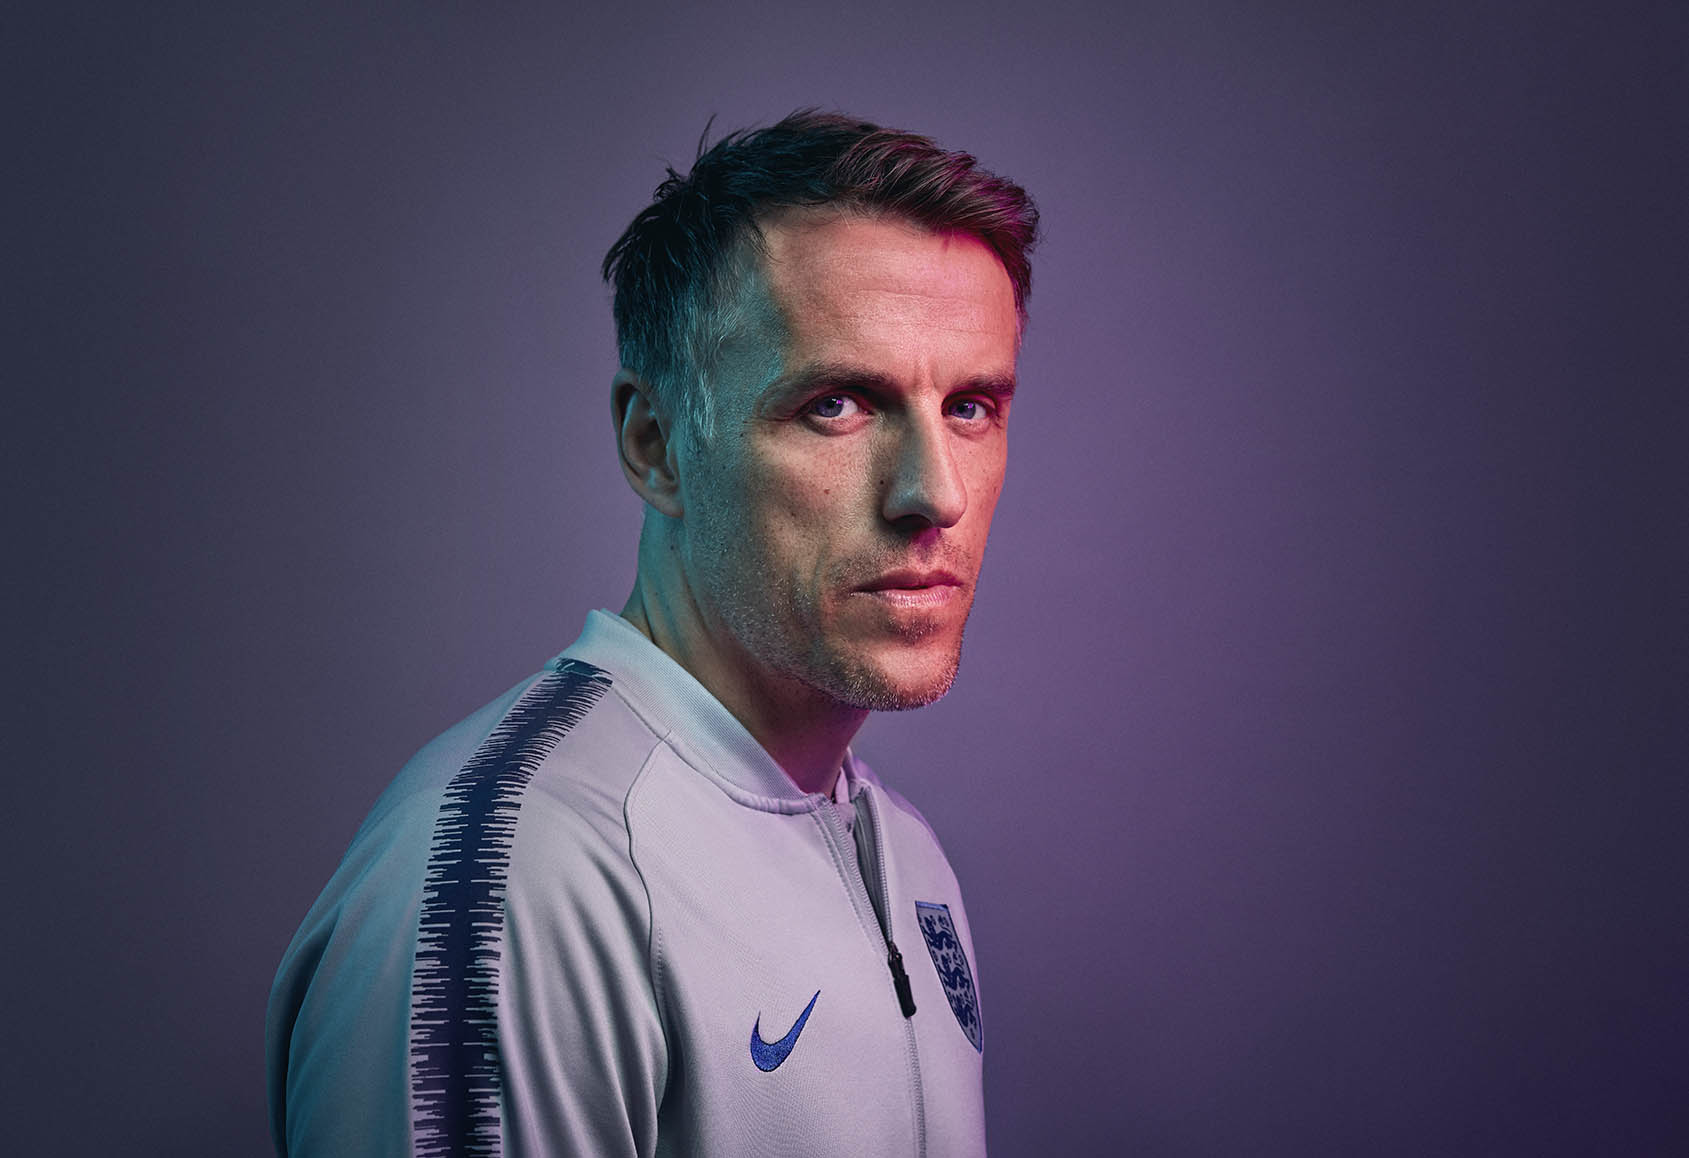 Philip John Neville is an English football coach and former player who is currently the head coach of the England women's team. He is also the co-owner of Salford City along with several of his former Manchester United teammates. Jon Enoch for TCV